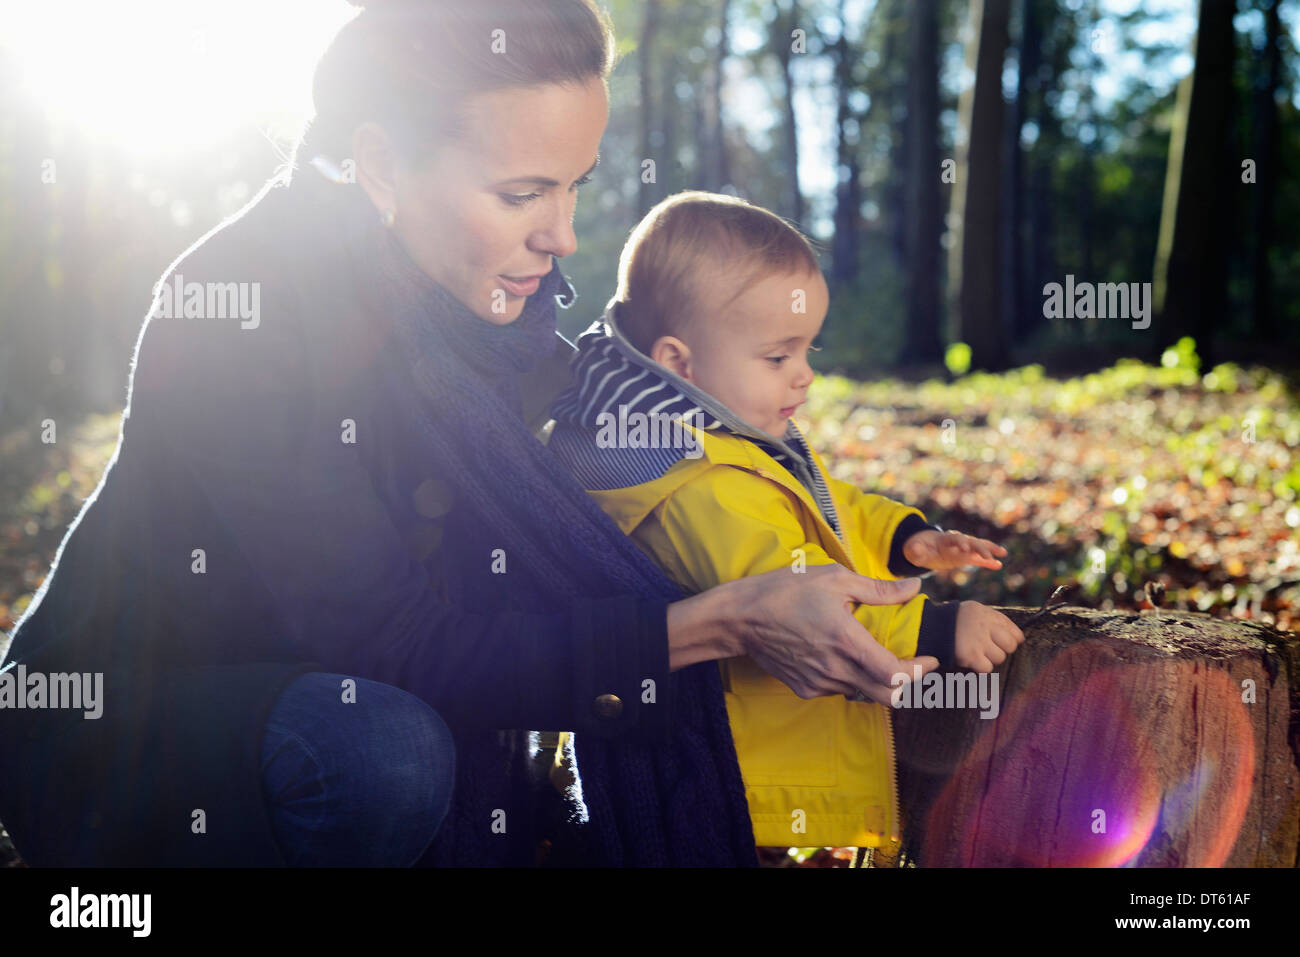 Mother and young toddler looking at tree stump - Stock Image